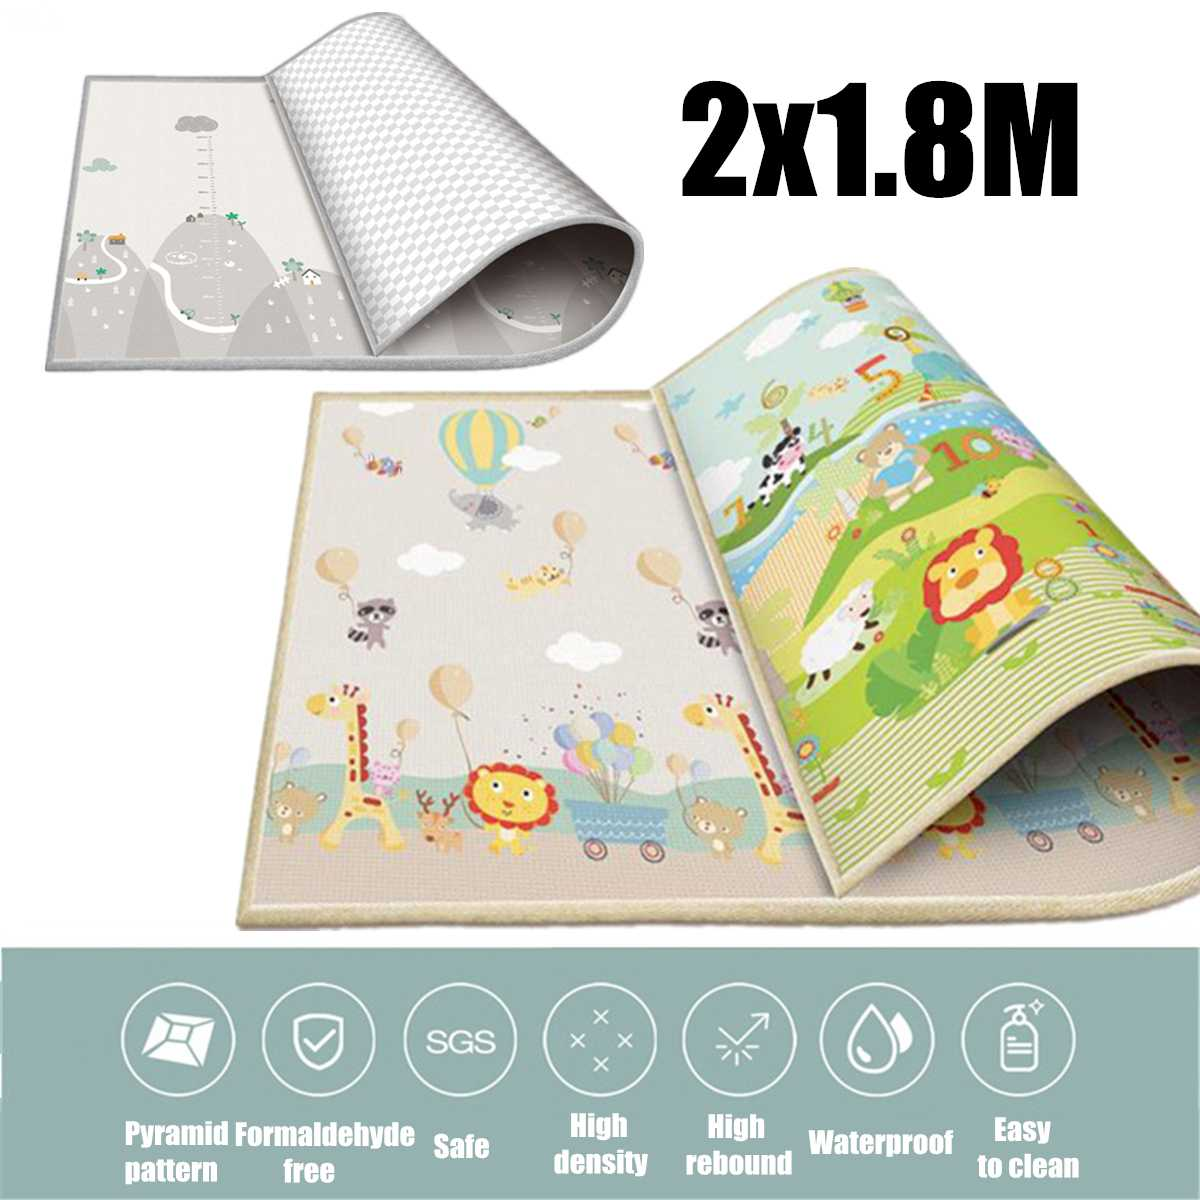 200x180cm LDPE Baby Crawling Playmats Thicken Play Mat Game Rug Children Carpet Floorcover Mat Double Sided